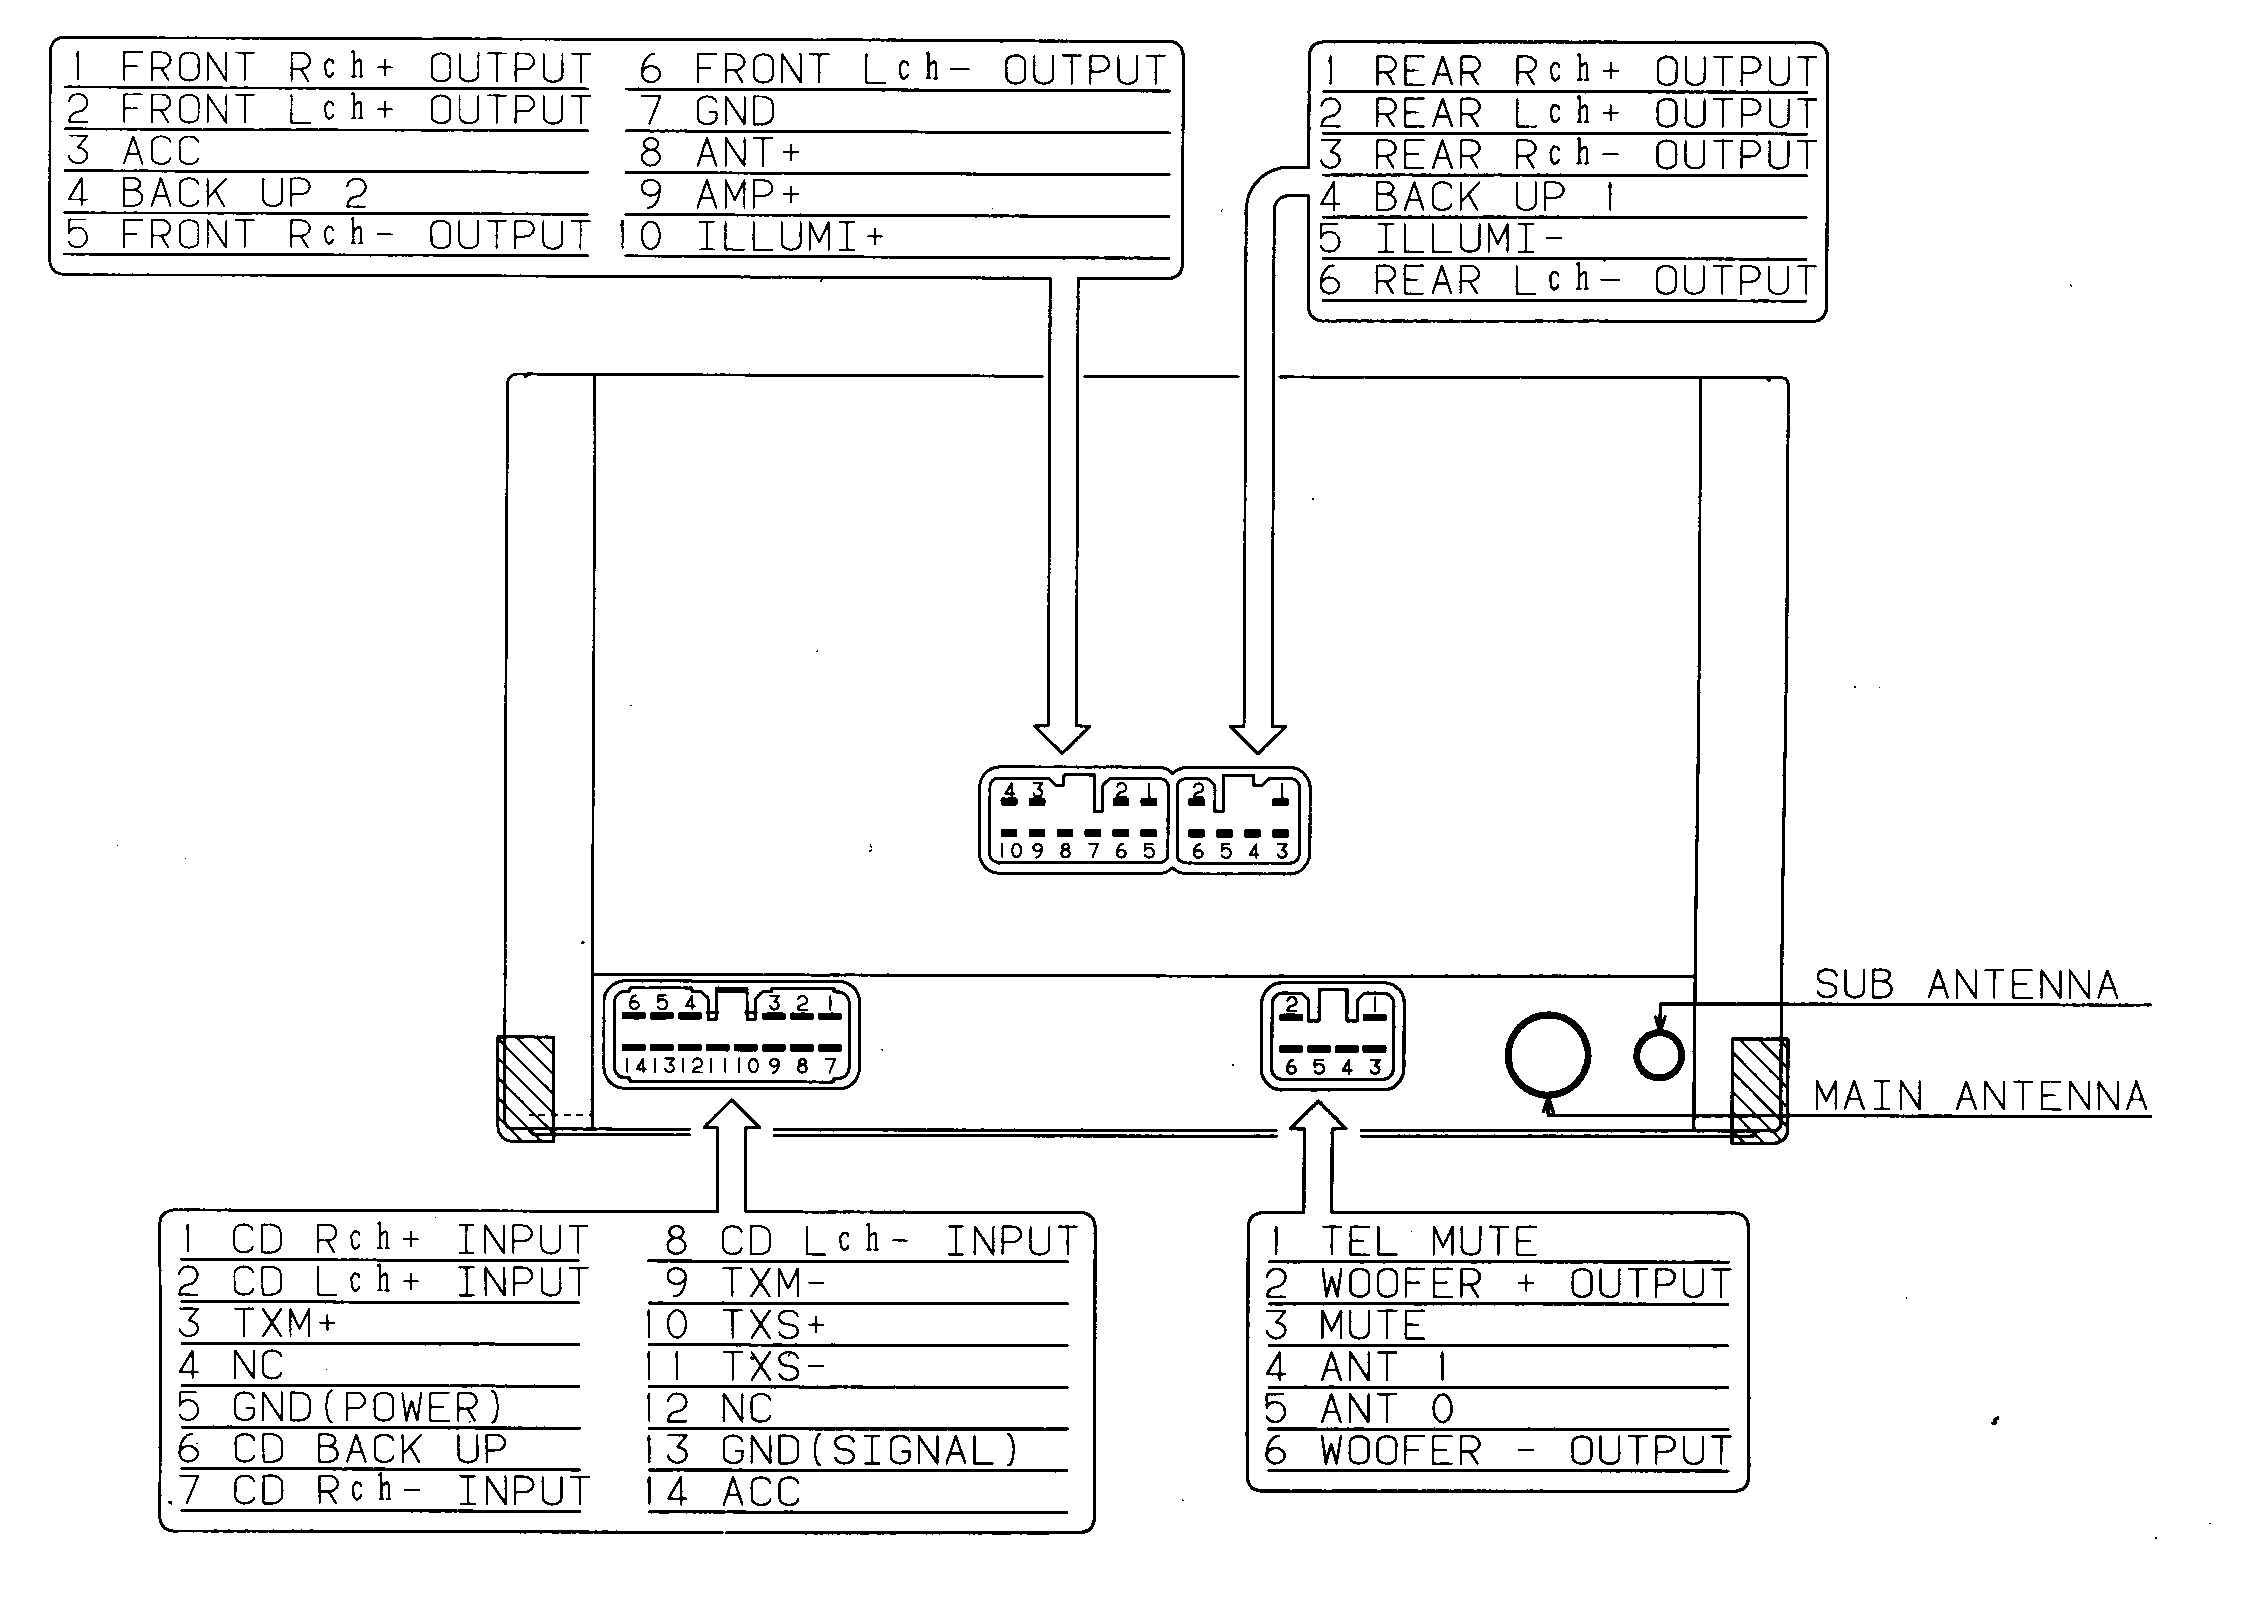 lexus car radio stereo audio wiring diagram autoradio connector wire rh  tehnomagazin com lexus is 200 audio wiring diagram lexus is 200 audio wiring  diagram